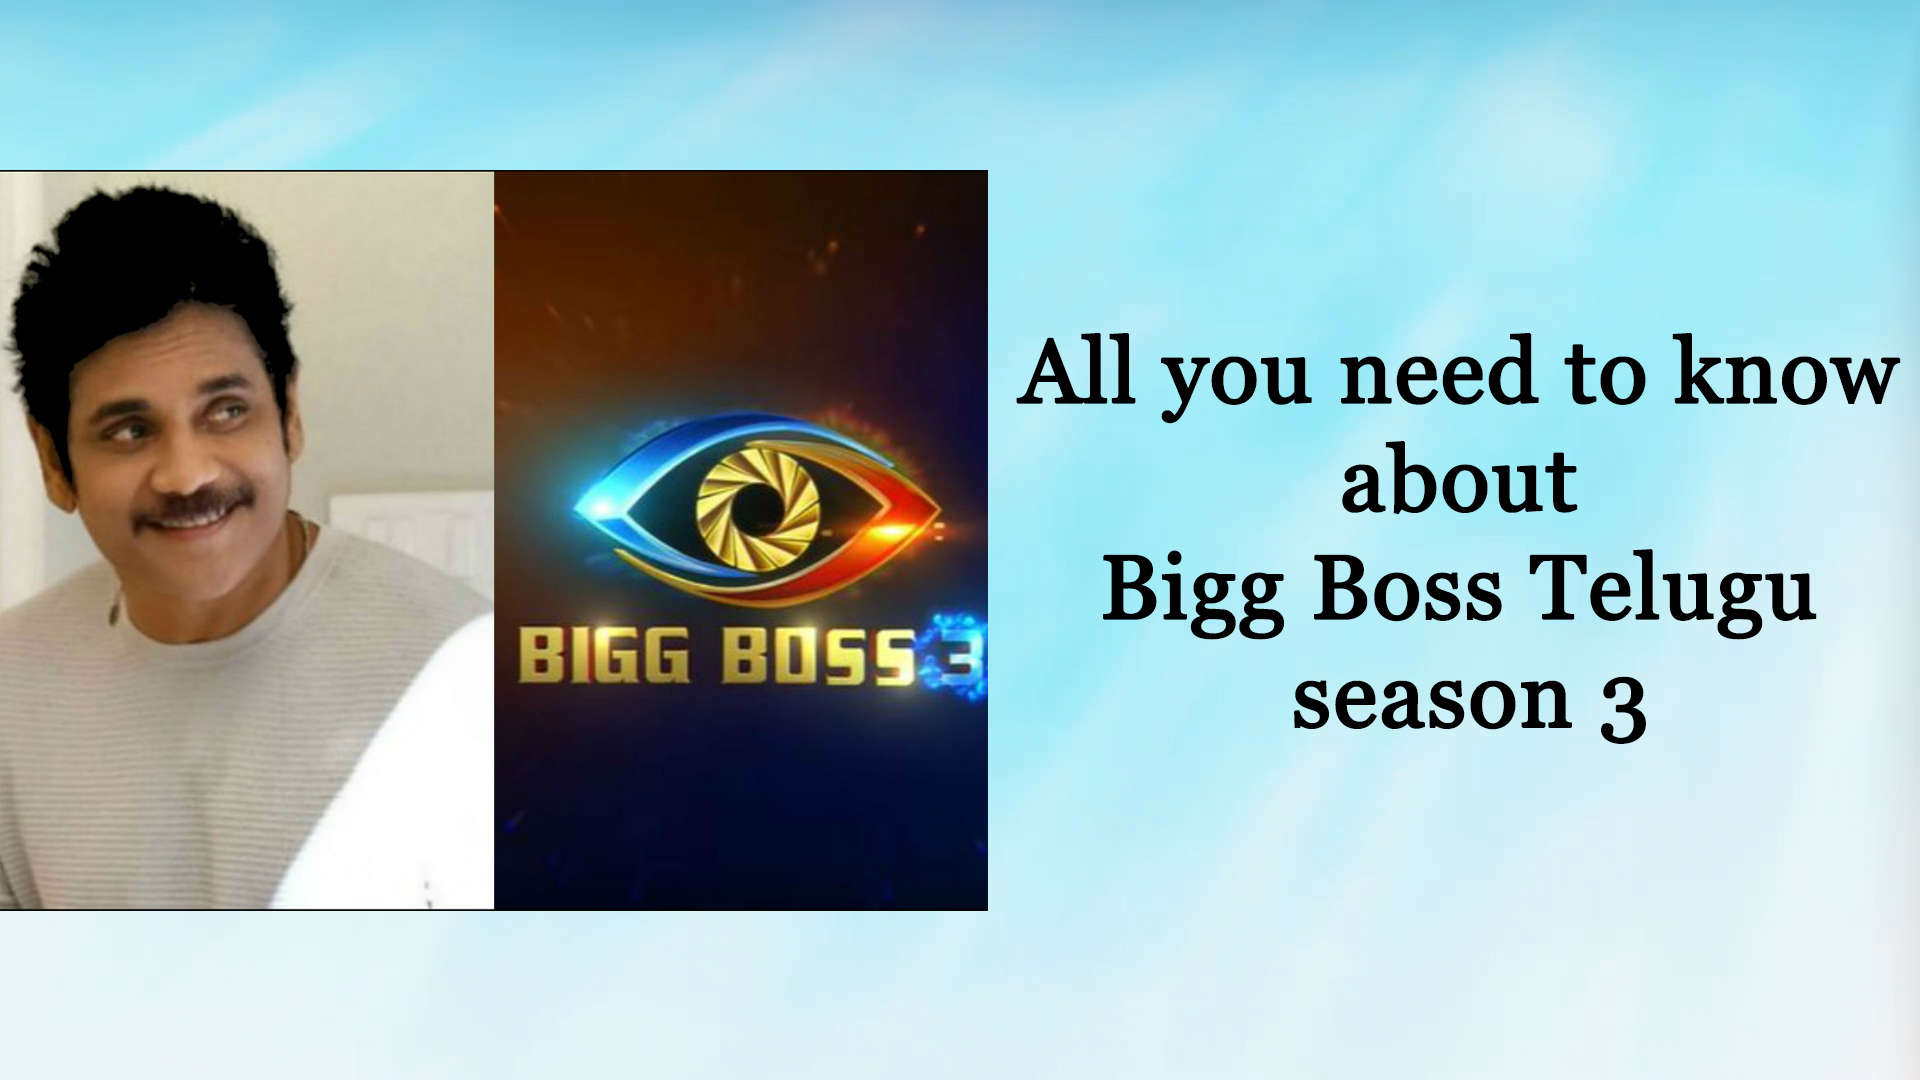 Bigg Boss Telugu 3: From launch date to probable contestants, all you need  to know about the upcoming season